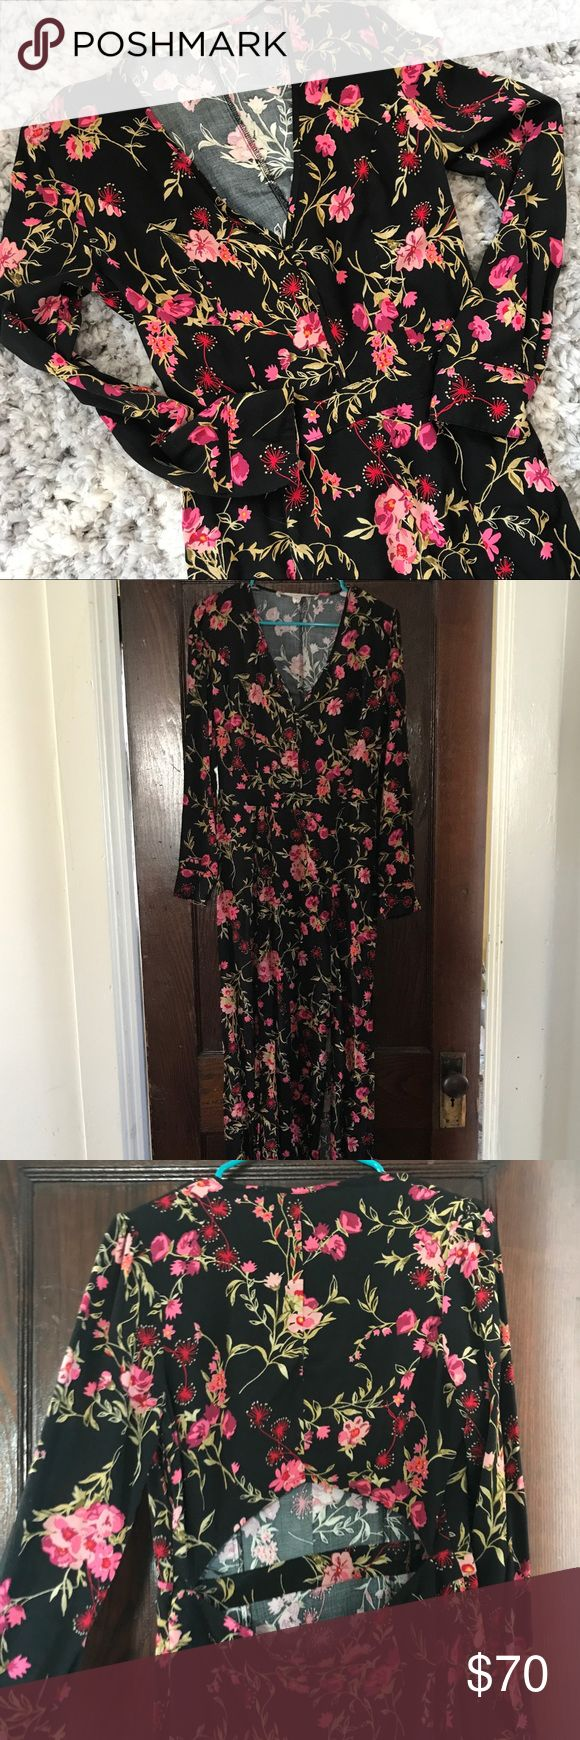 NWOT open back maxi dress [chelsea & violet] Perfect for a winter or early spring wedding! This maxi dress features a bright, all over floral pattern, a deep V neck, two slits in the skirt stopping approximately mid thigh, and a cutout in the back. Never worn! This item is brand new, but without tags. Only selling because I don't have really any occasions coming up to wear it. Time to let it have another chance at being worn! Chelsea & Violet Dresses Maxi